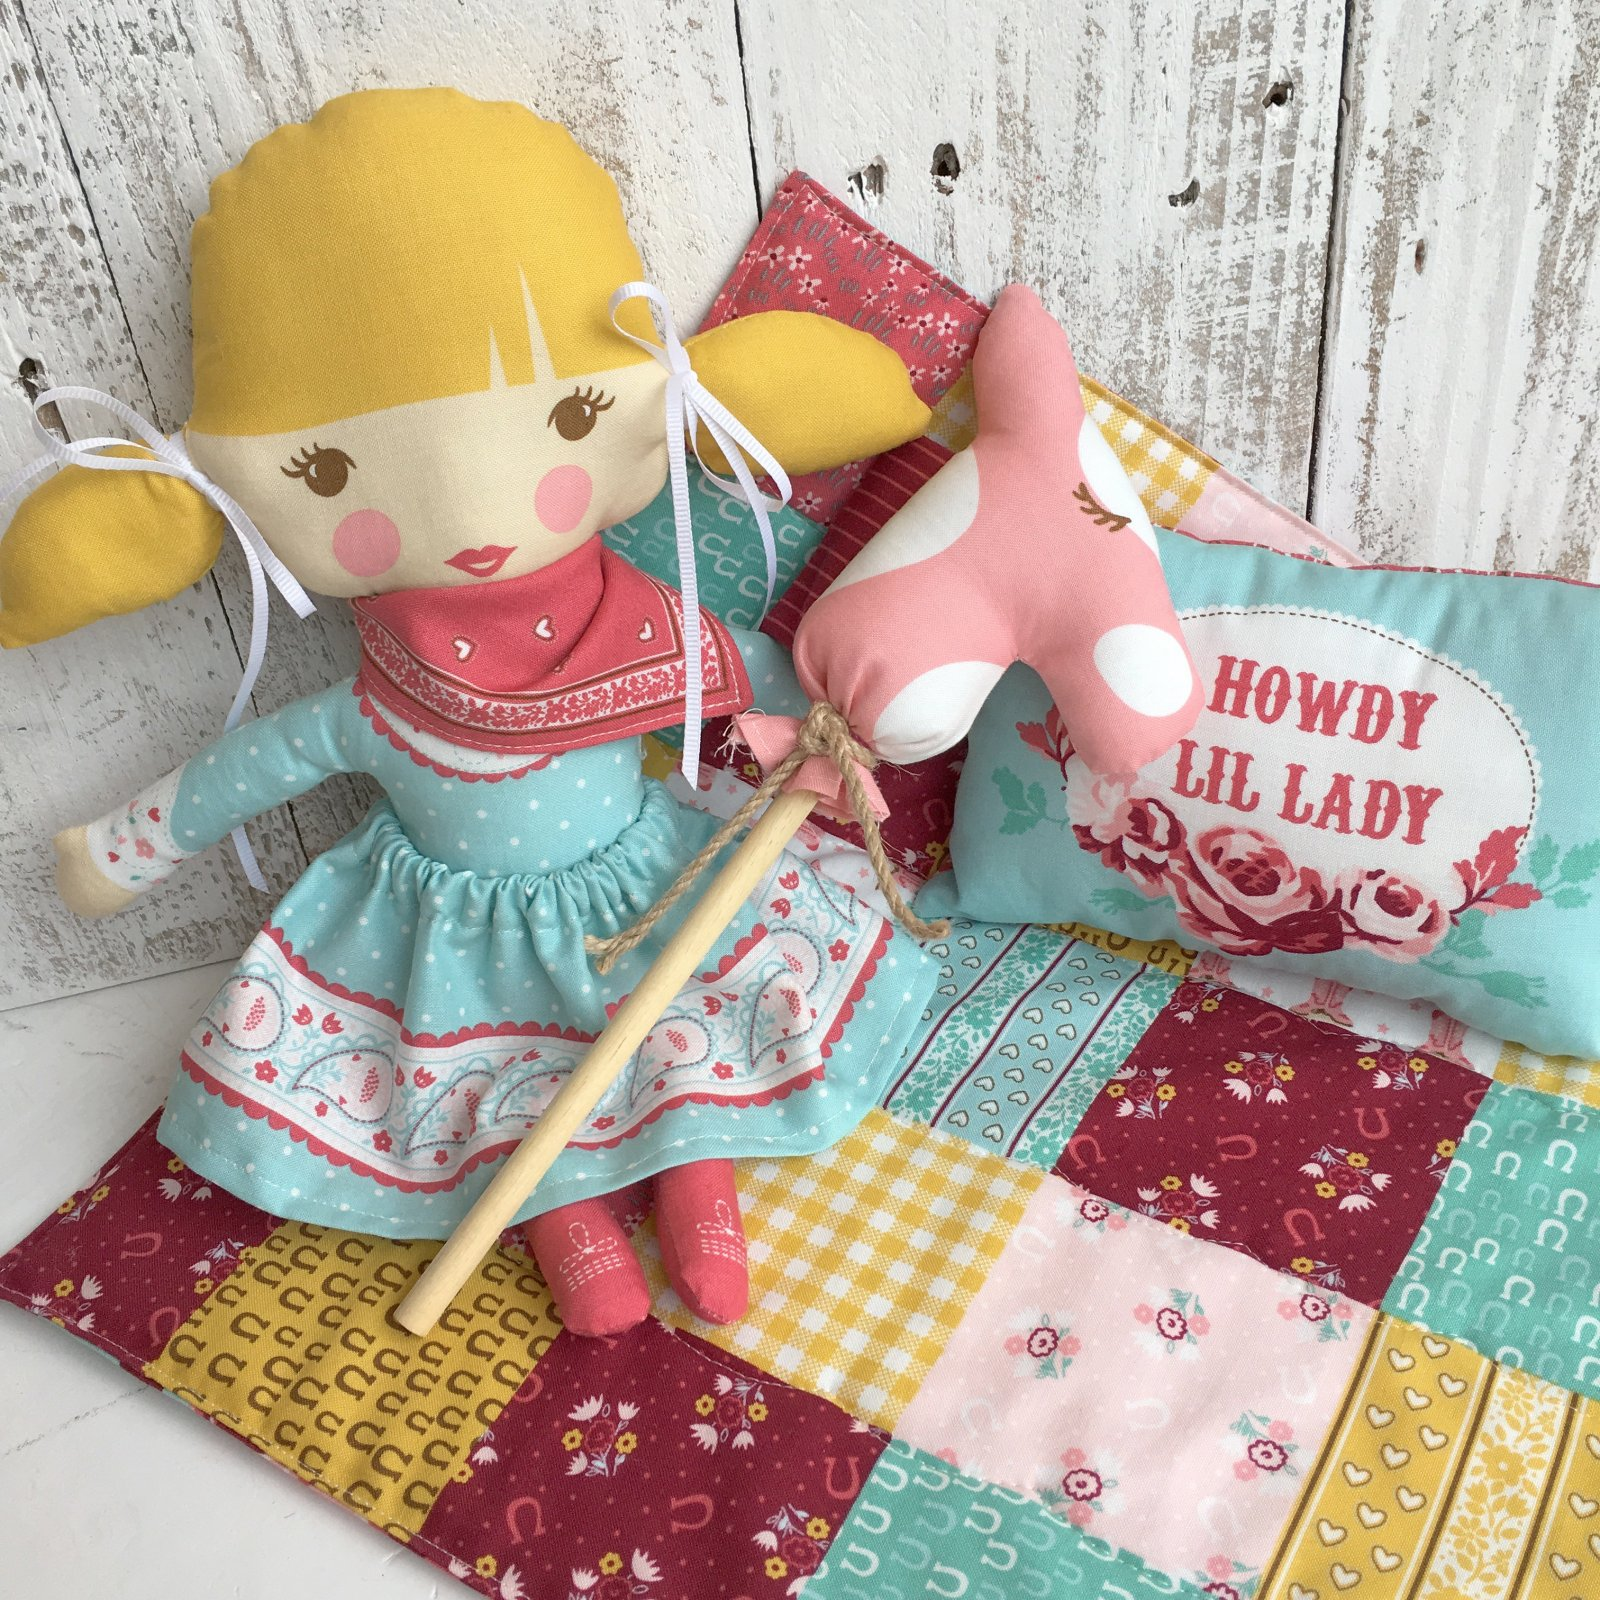 Howdy Panel Lil Lady Doll Multi